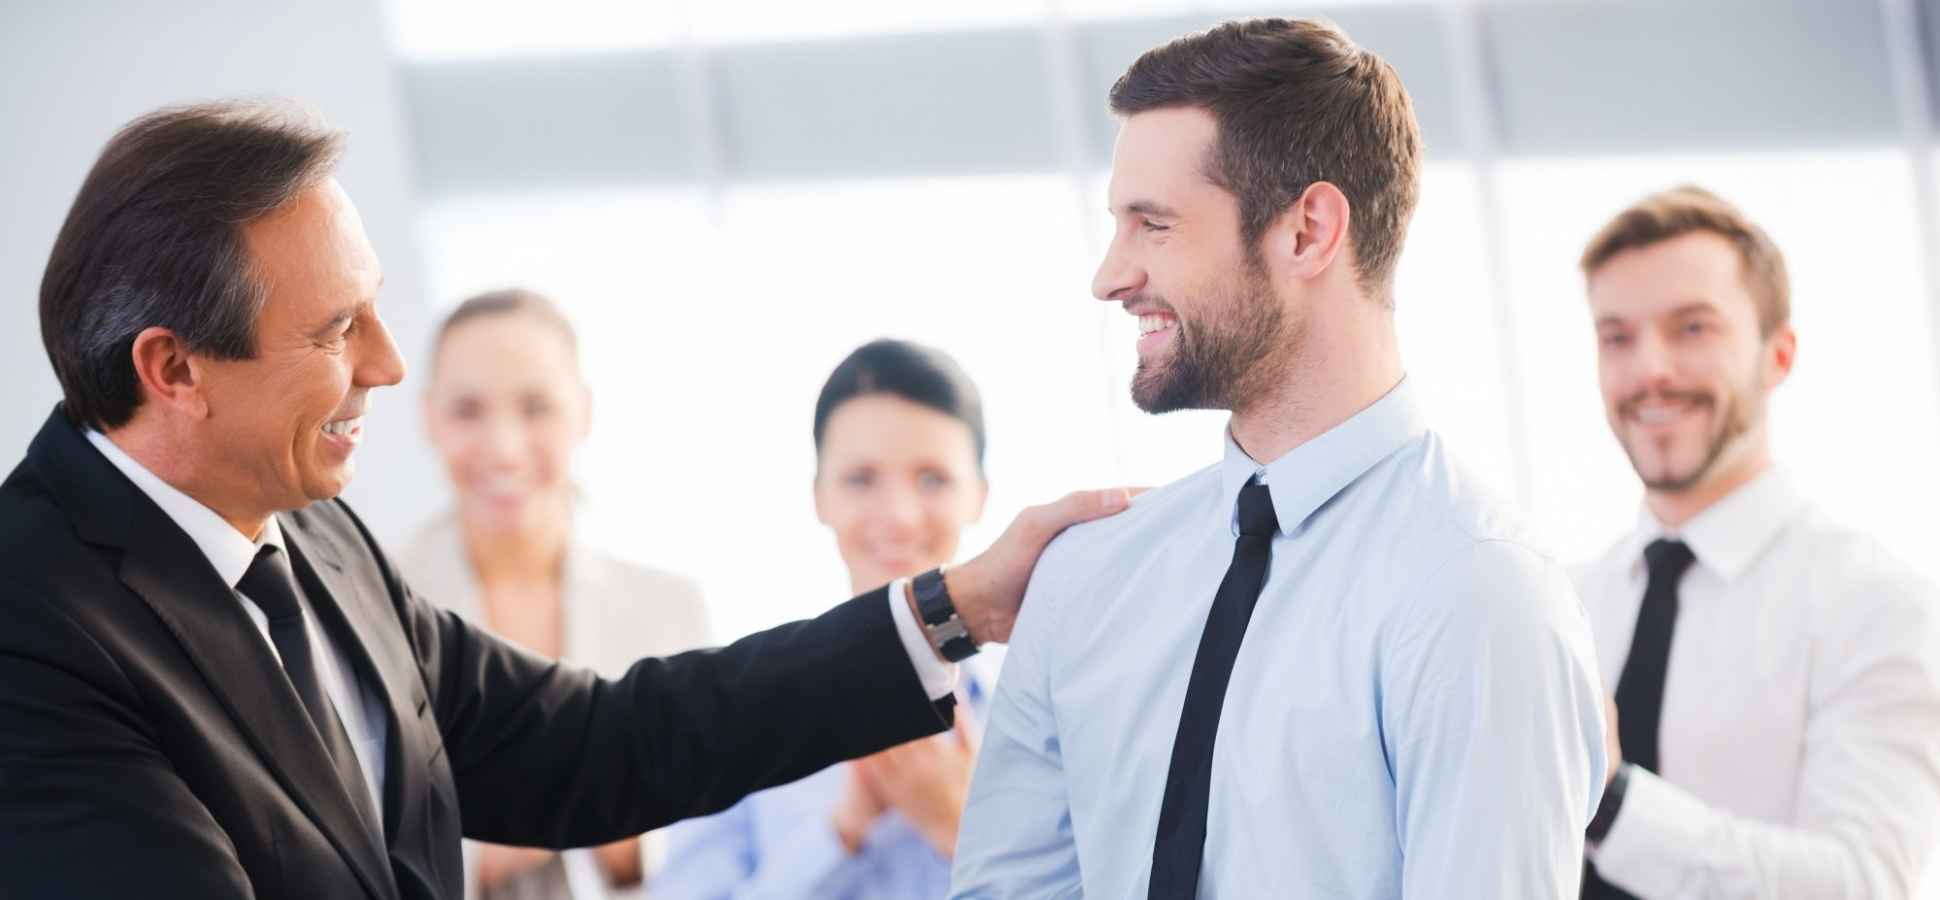 6 Keys To Giving Positive Feedback That Drives Better Results